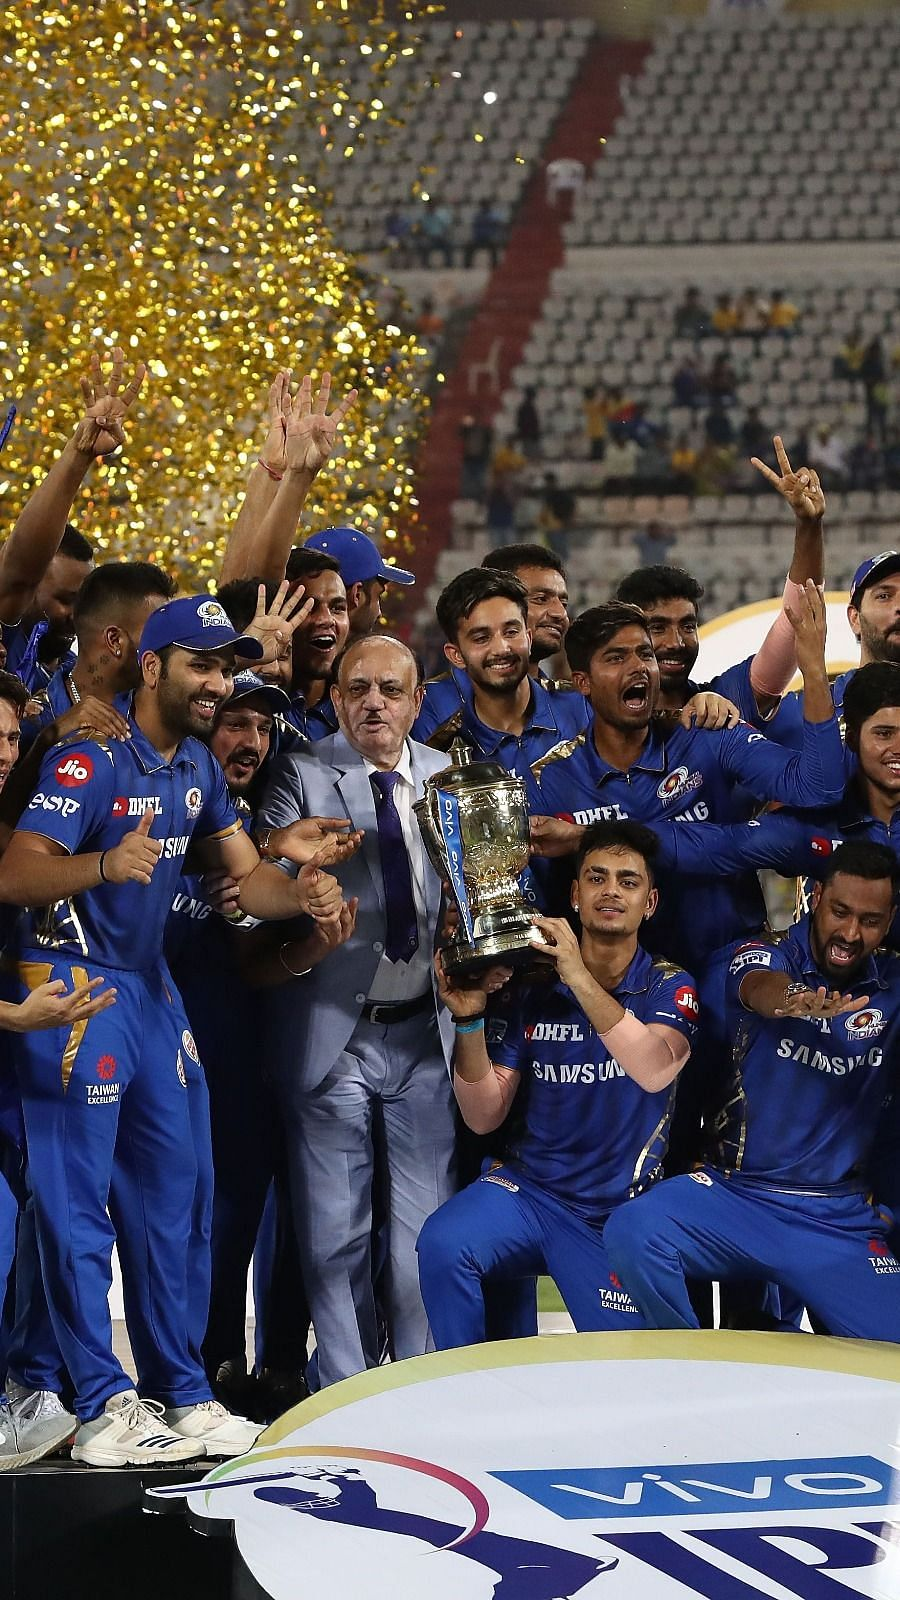 Ipl 2020 Live Telecast Channel List And Ipl Live Streaming Details When And Where To Watch Ipl 2020 The announcement many people have been waiting for has finally arrived. ipl 2020 live telecast channel list and